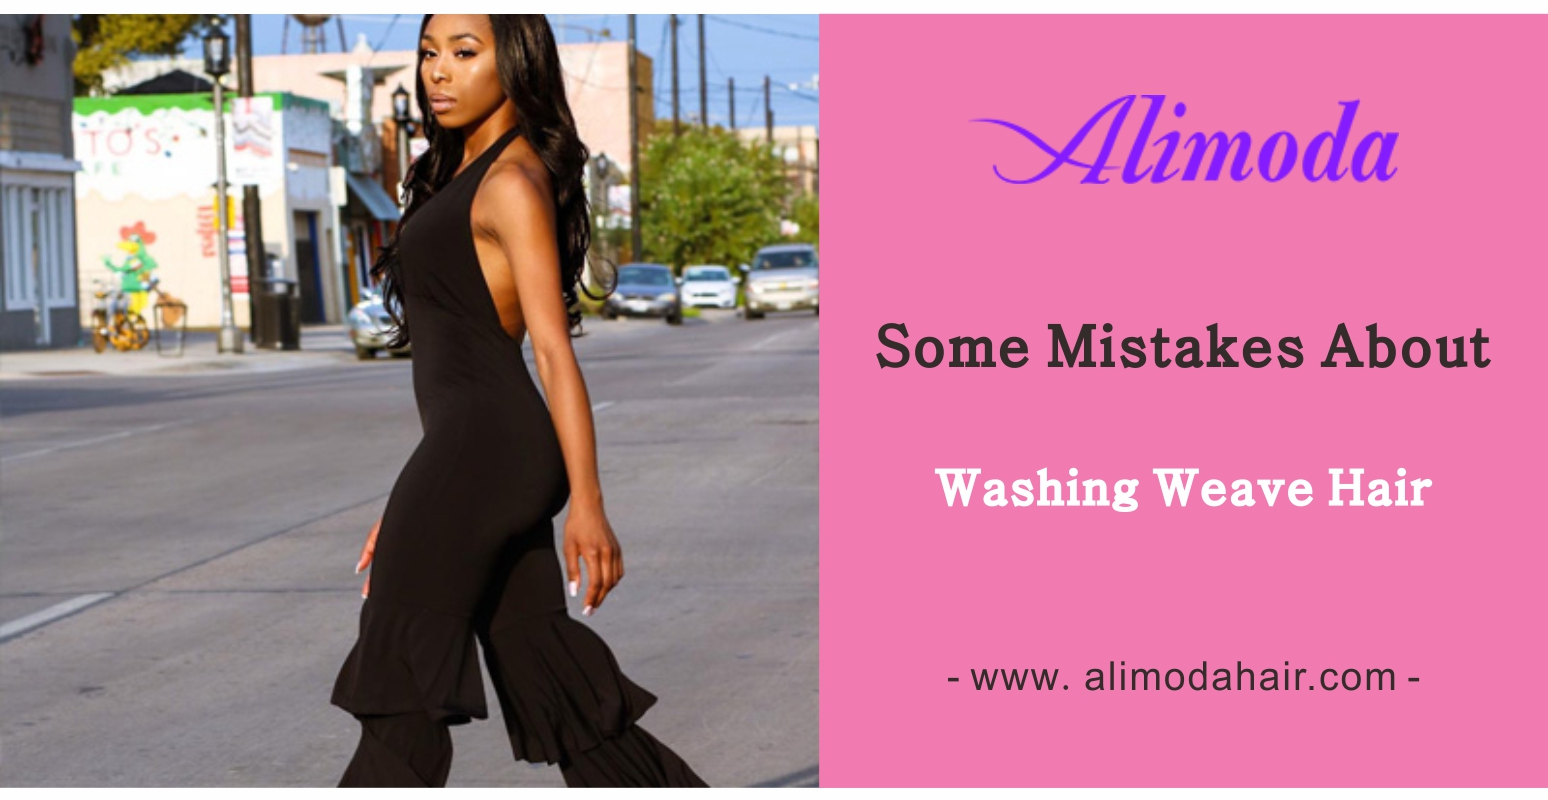 Some mistakes about washing weave hair